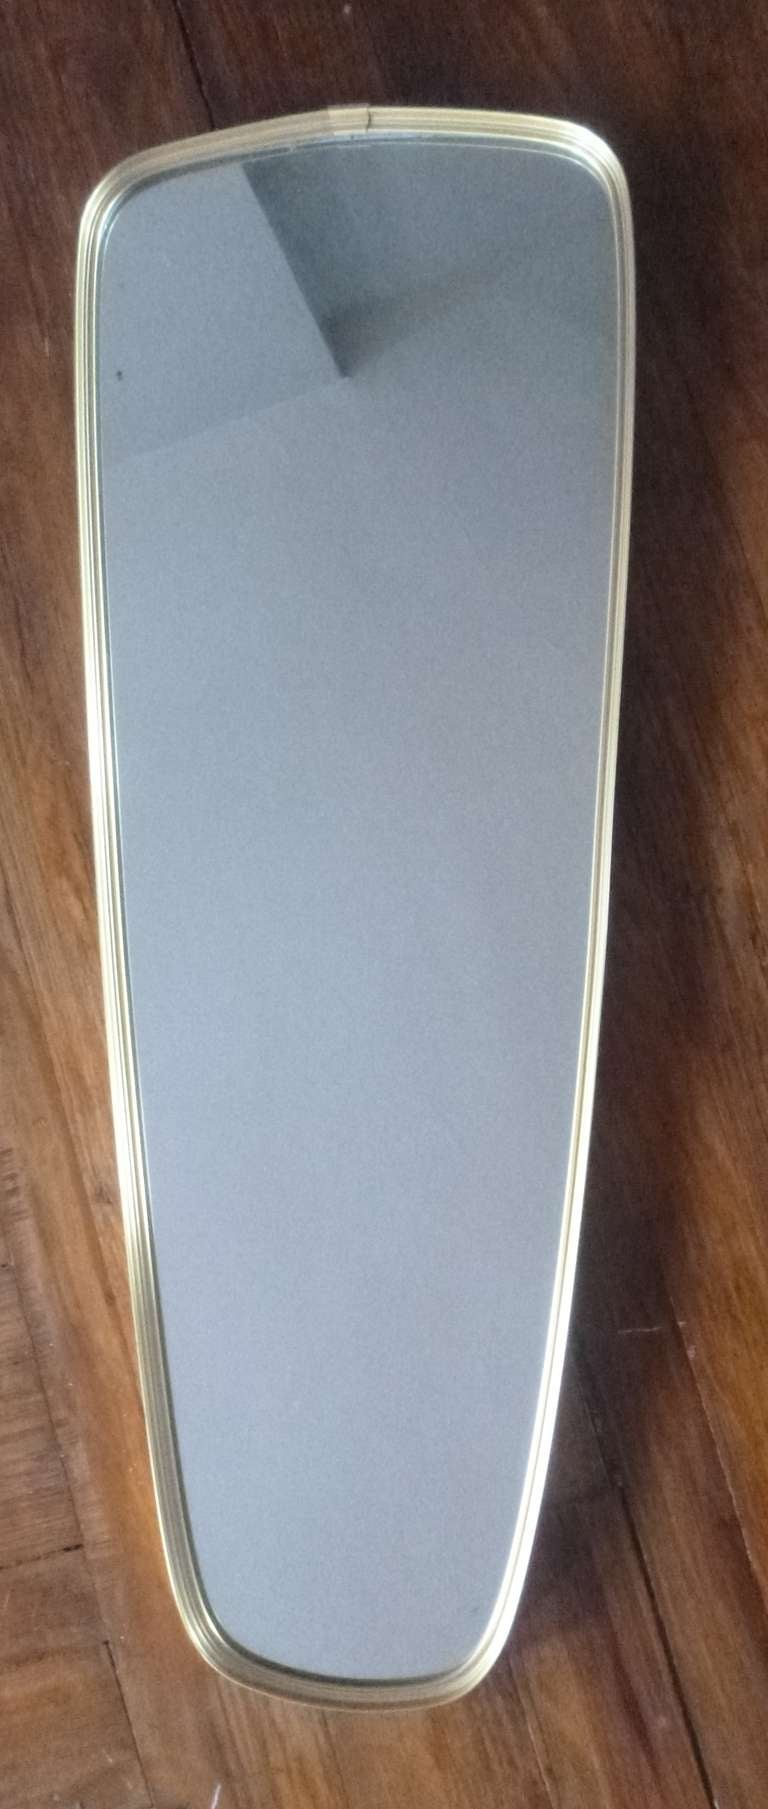 Brass Oblong Oval Wall Mirror For Sale At 1stdibs